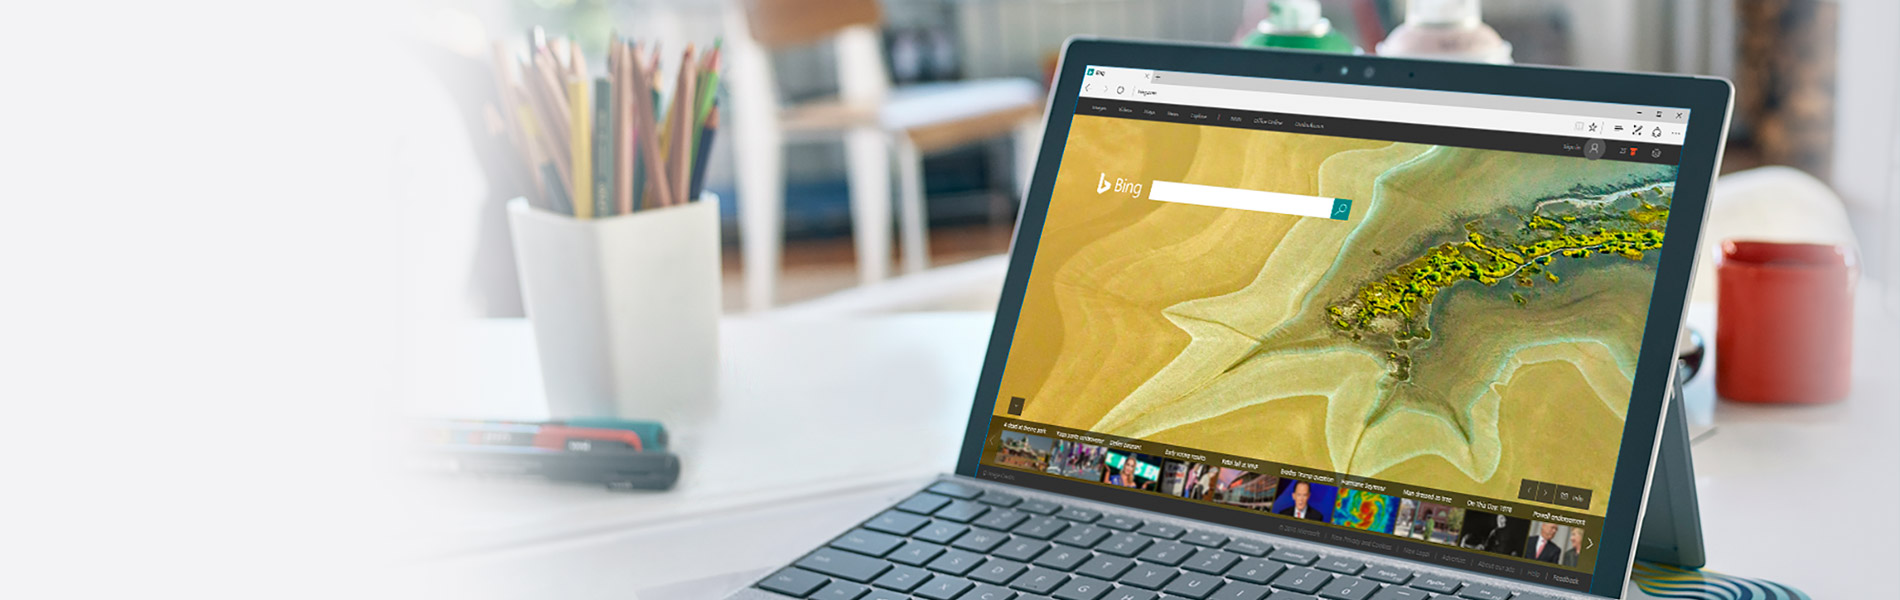 A Surface tablet on a table with the Bing search engine on the screen.